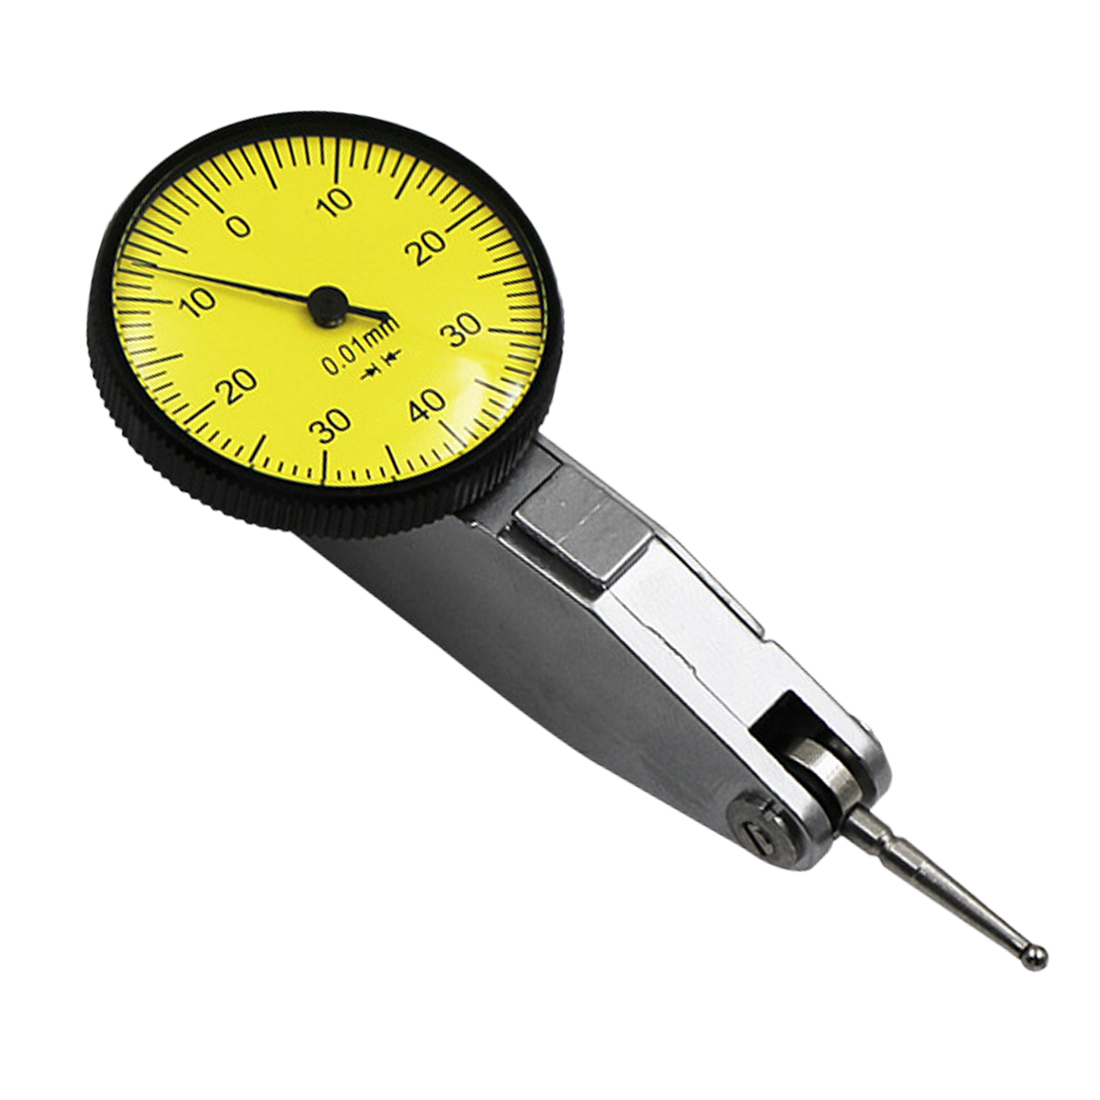 1pcs Dial Test Indicator 0-0.8mm Accurate 0.01mm Dial Indicator Dial Gauge Test Waterproof Indicator Measuring Instrument Tool